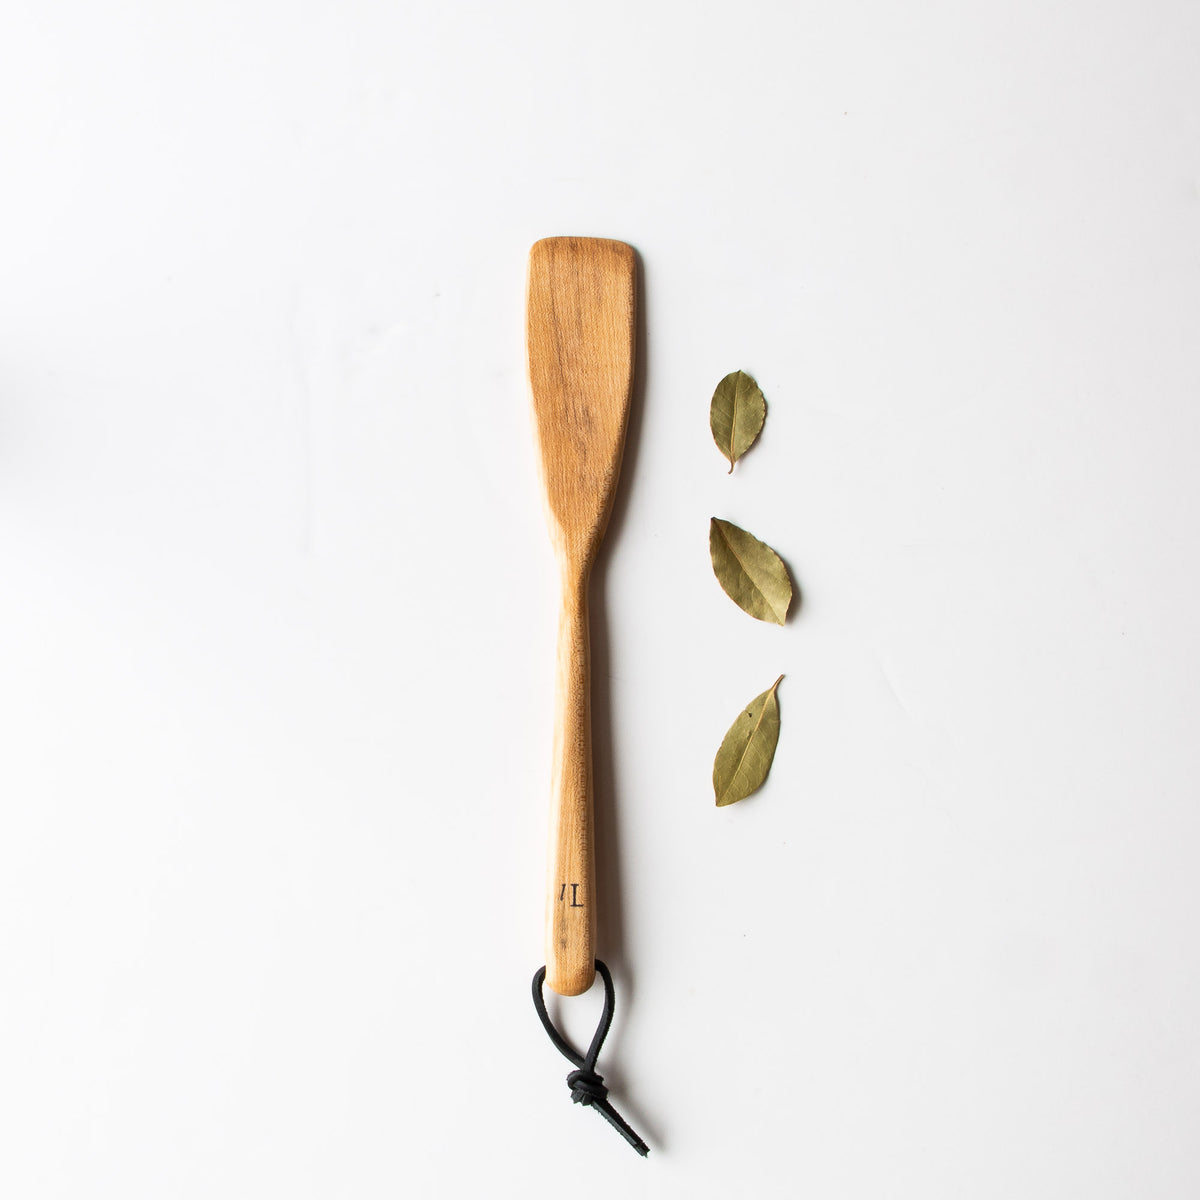 One Handcrafted Everyday Spoons in Reclaimed Maple Wood - Sold by Chic & Basta